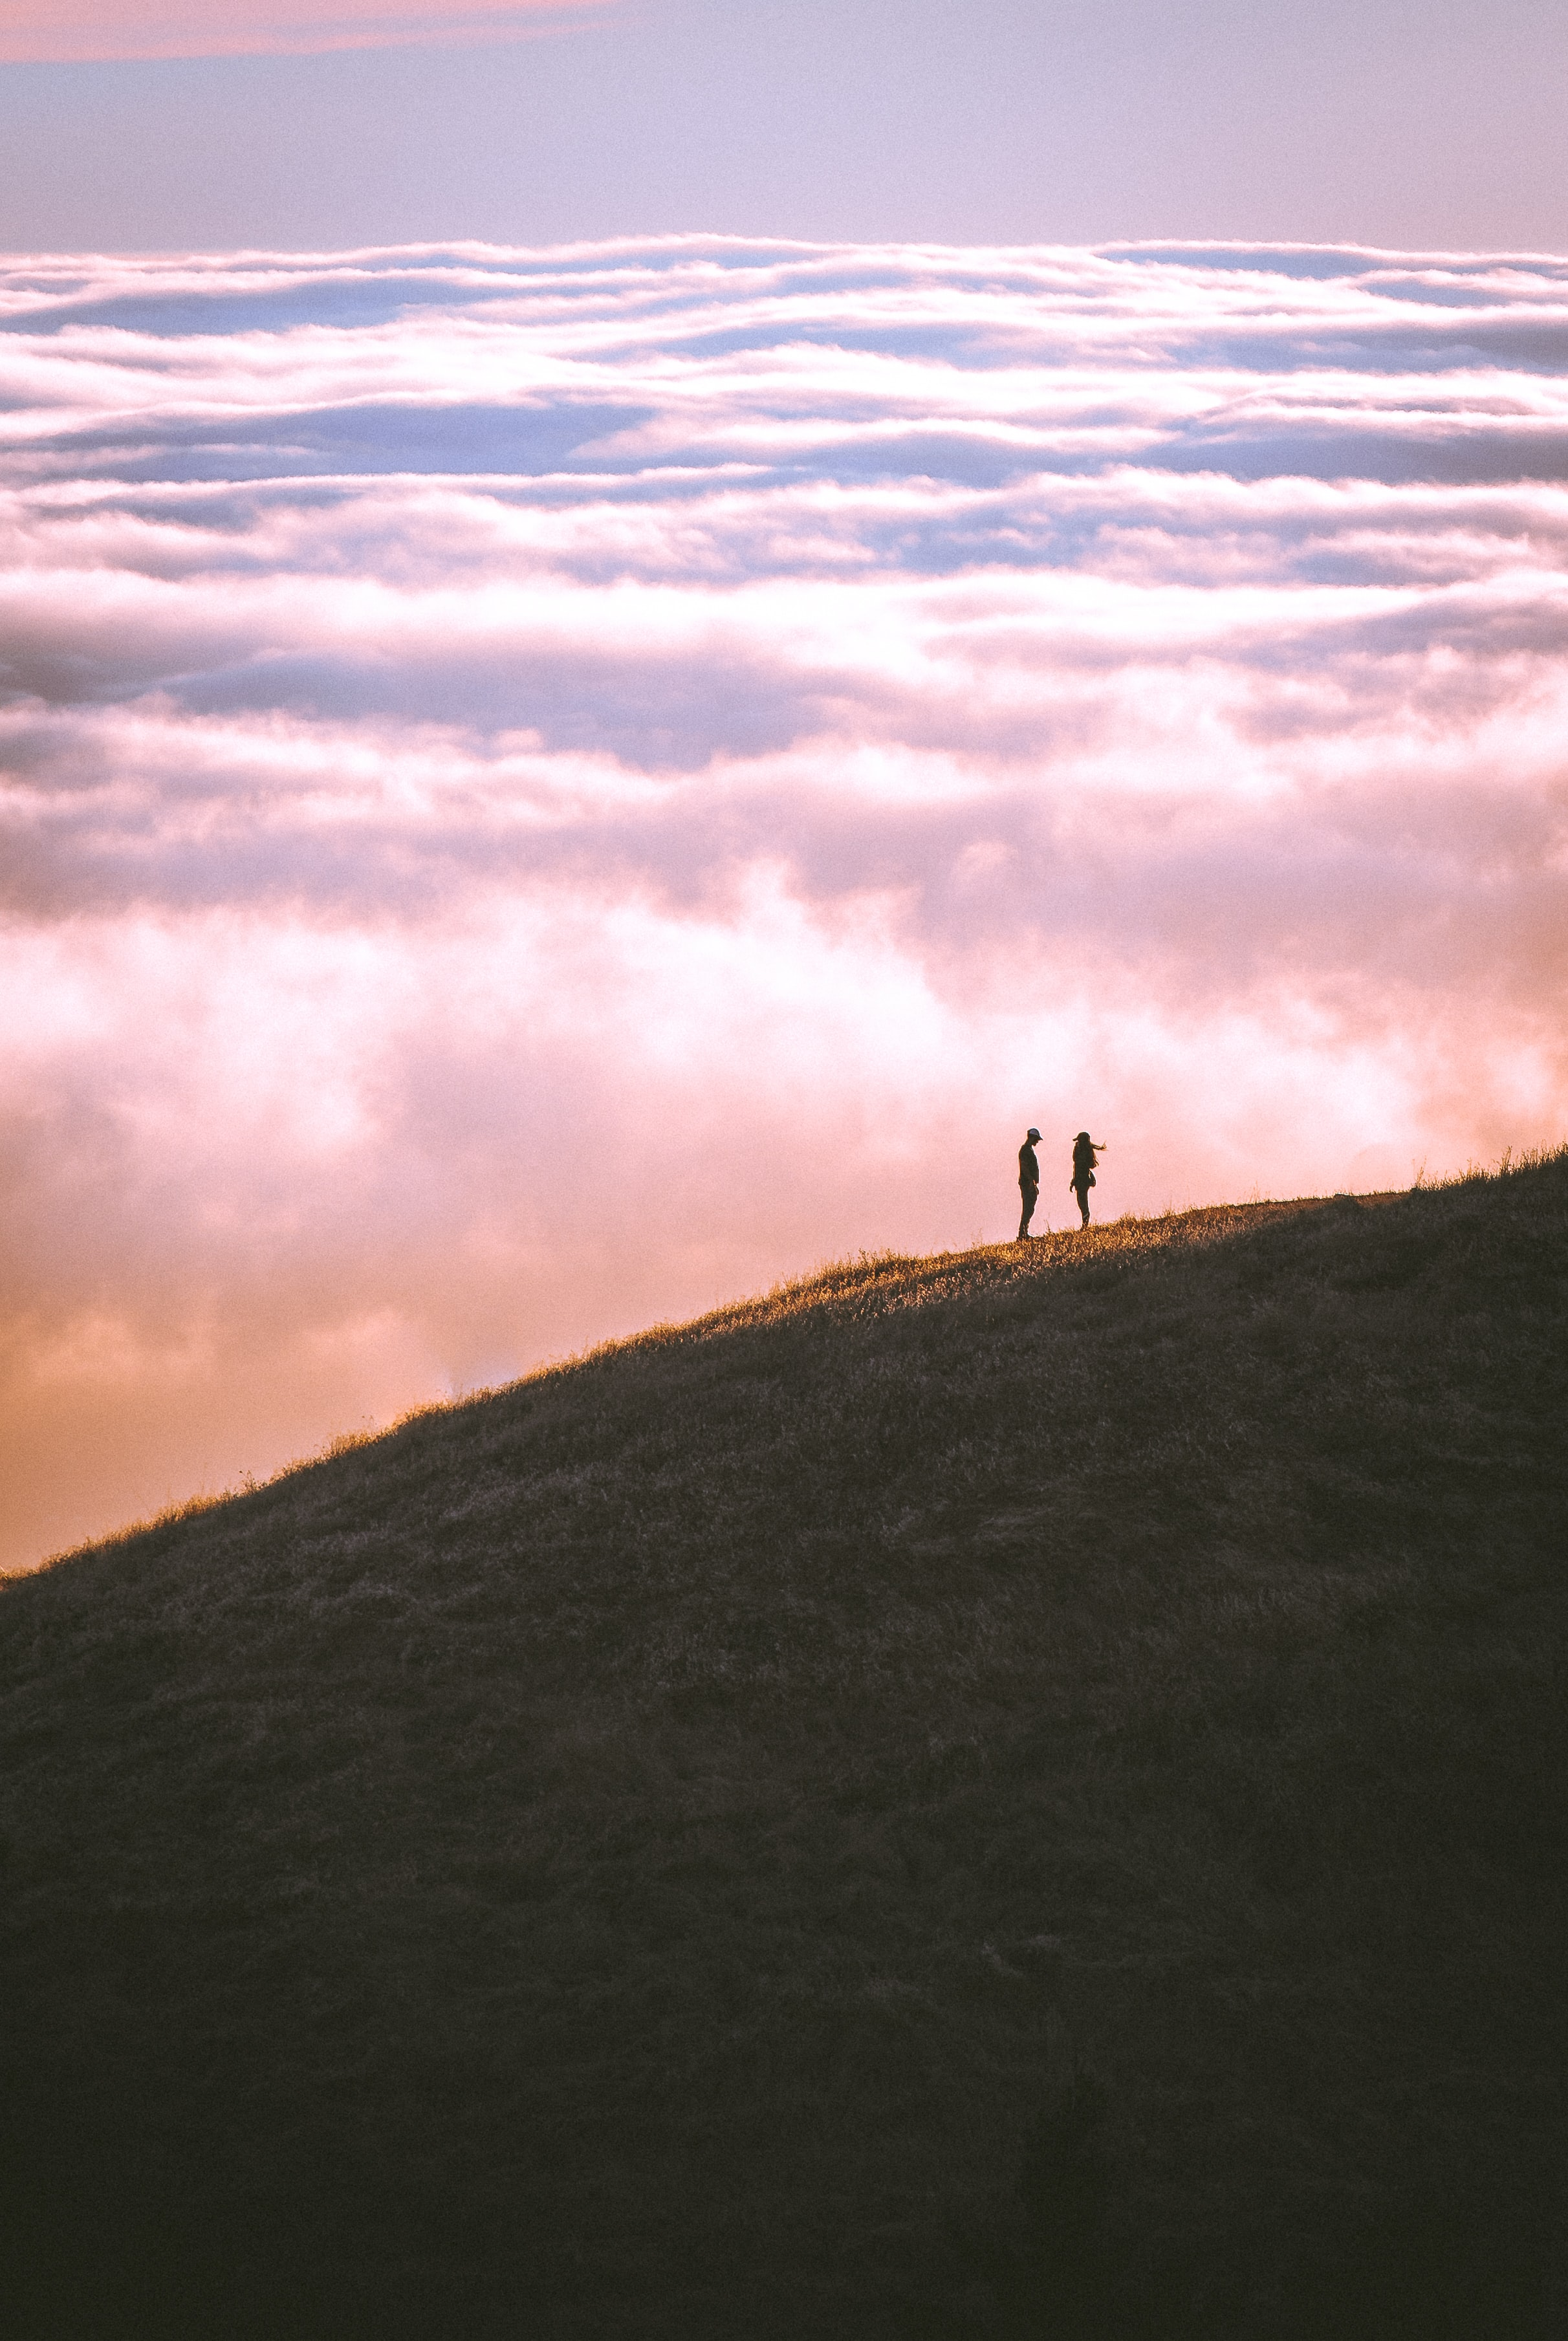 Two people on a hill against a sunset of clouds